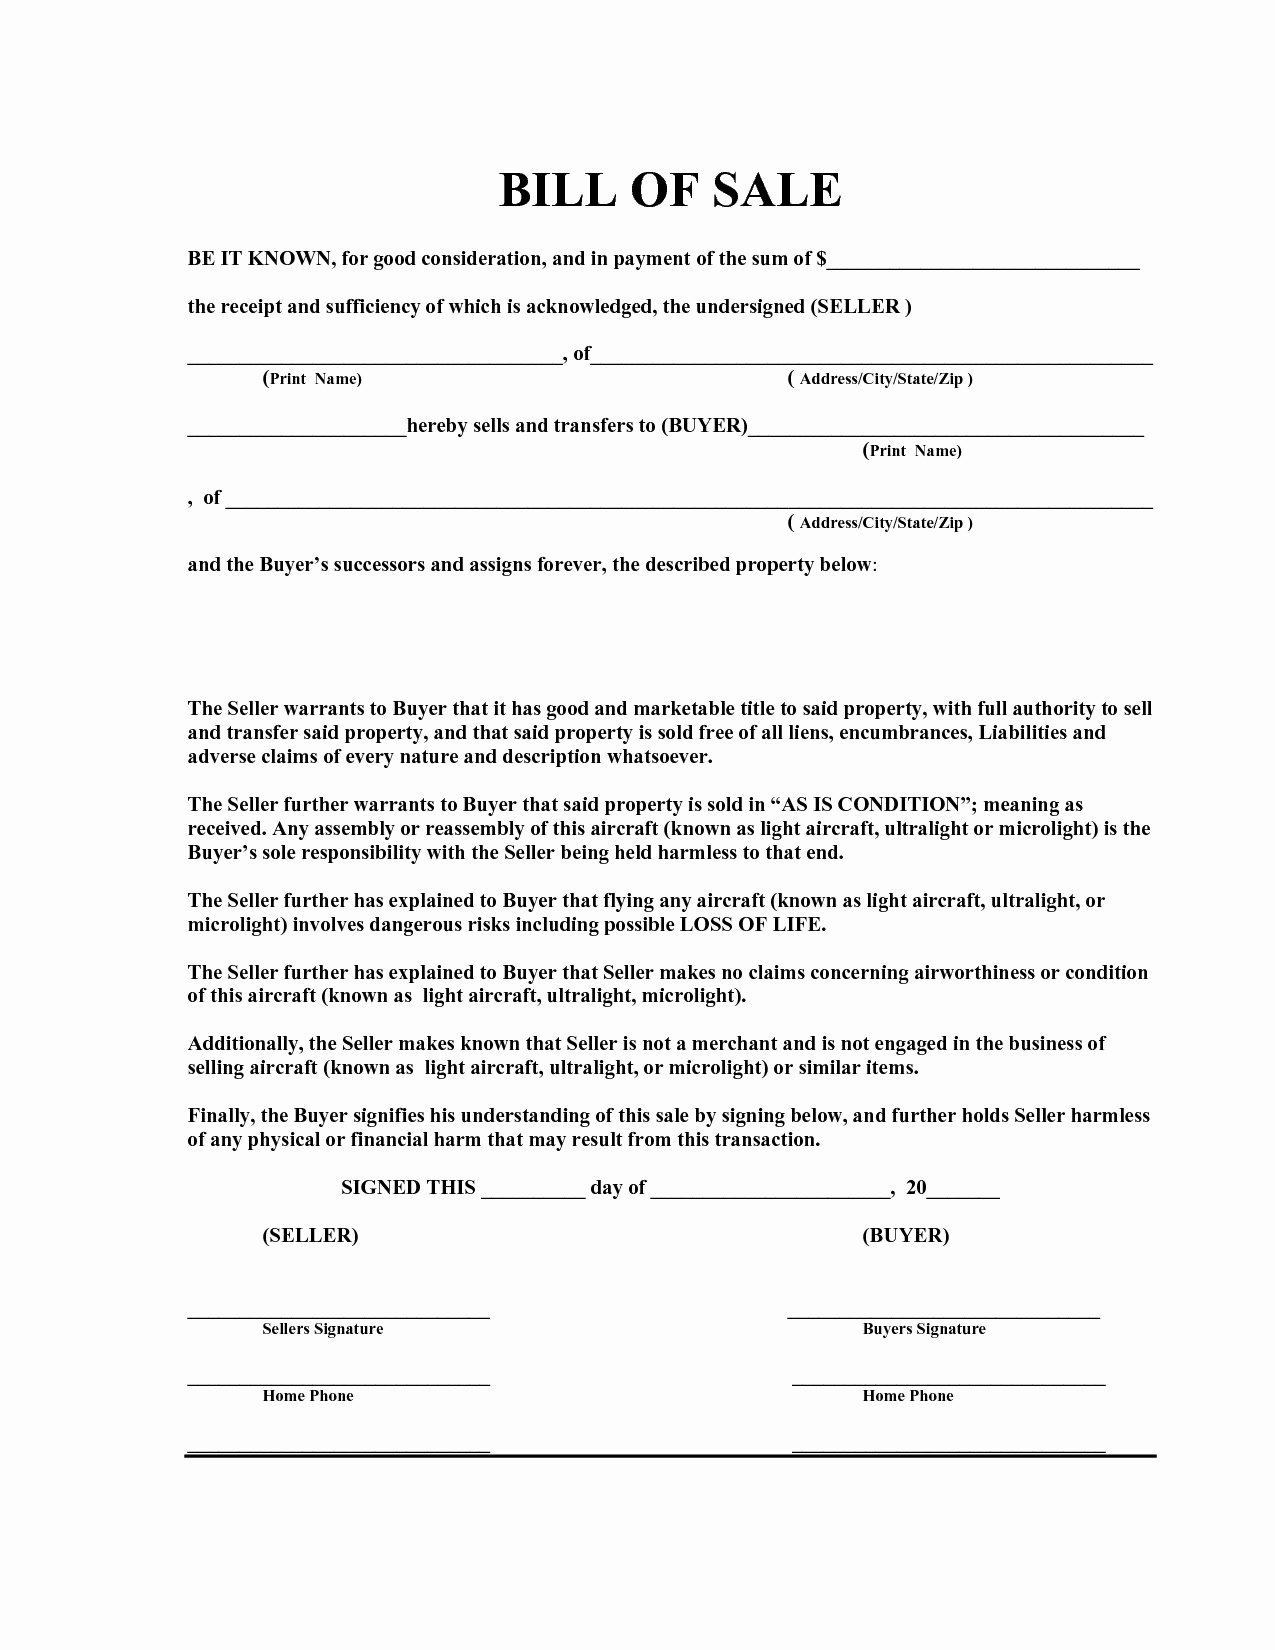 Simple Bill Of Sale Example Best Of Bill Sale for Land Simple Car Anuvratinfo